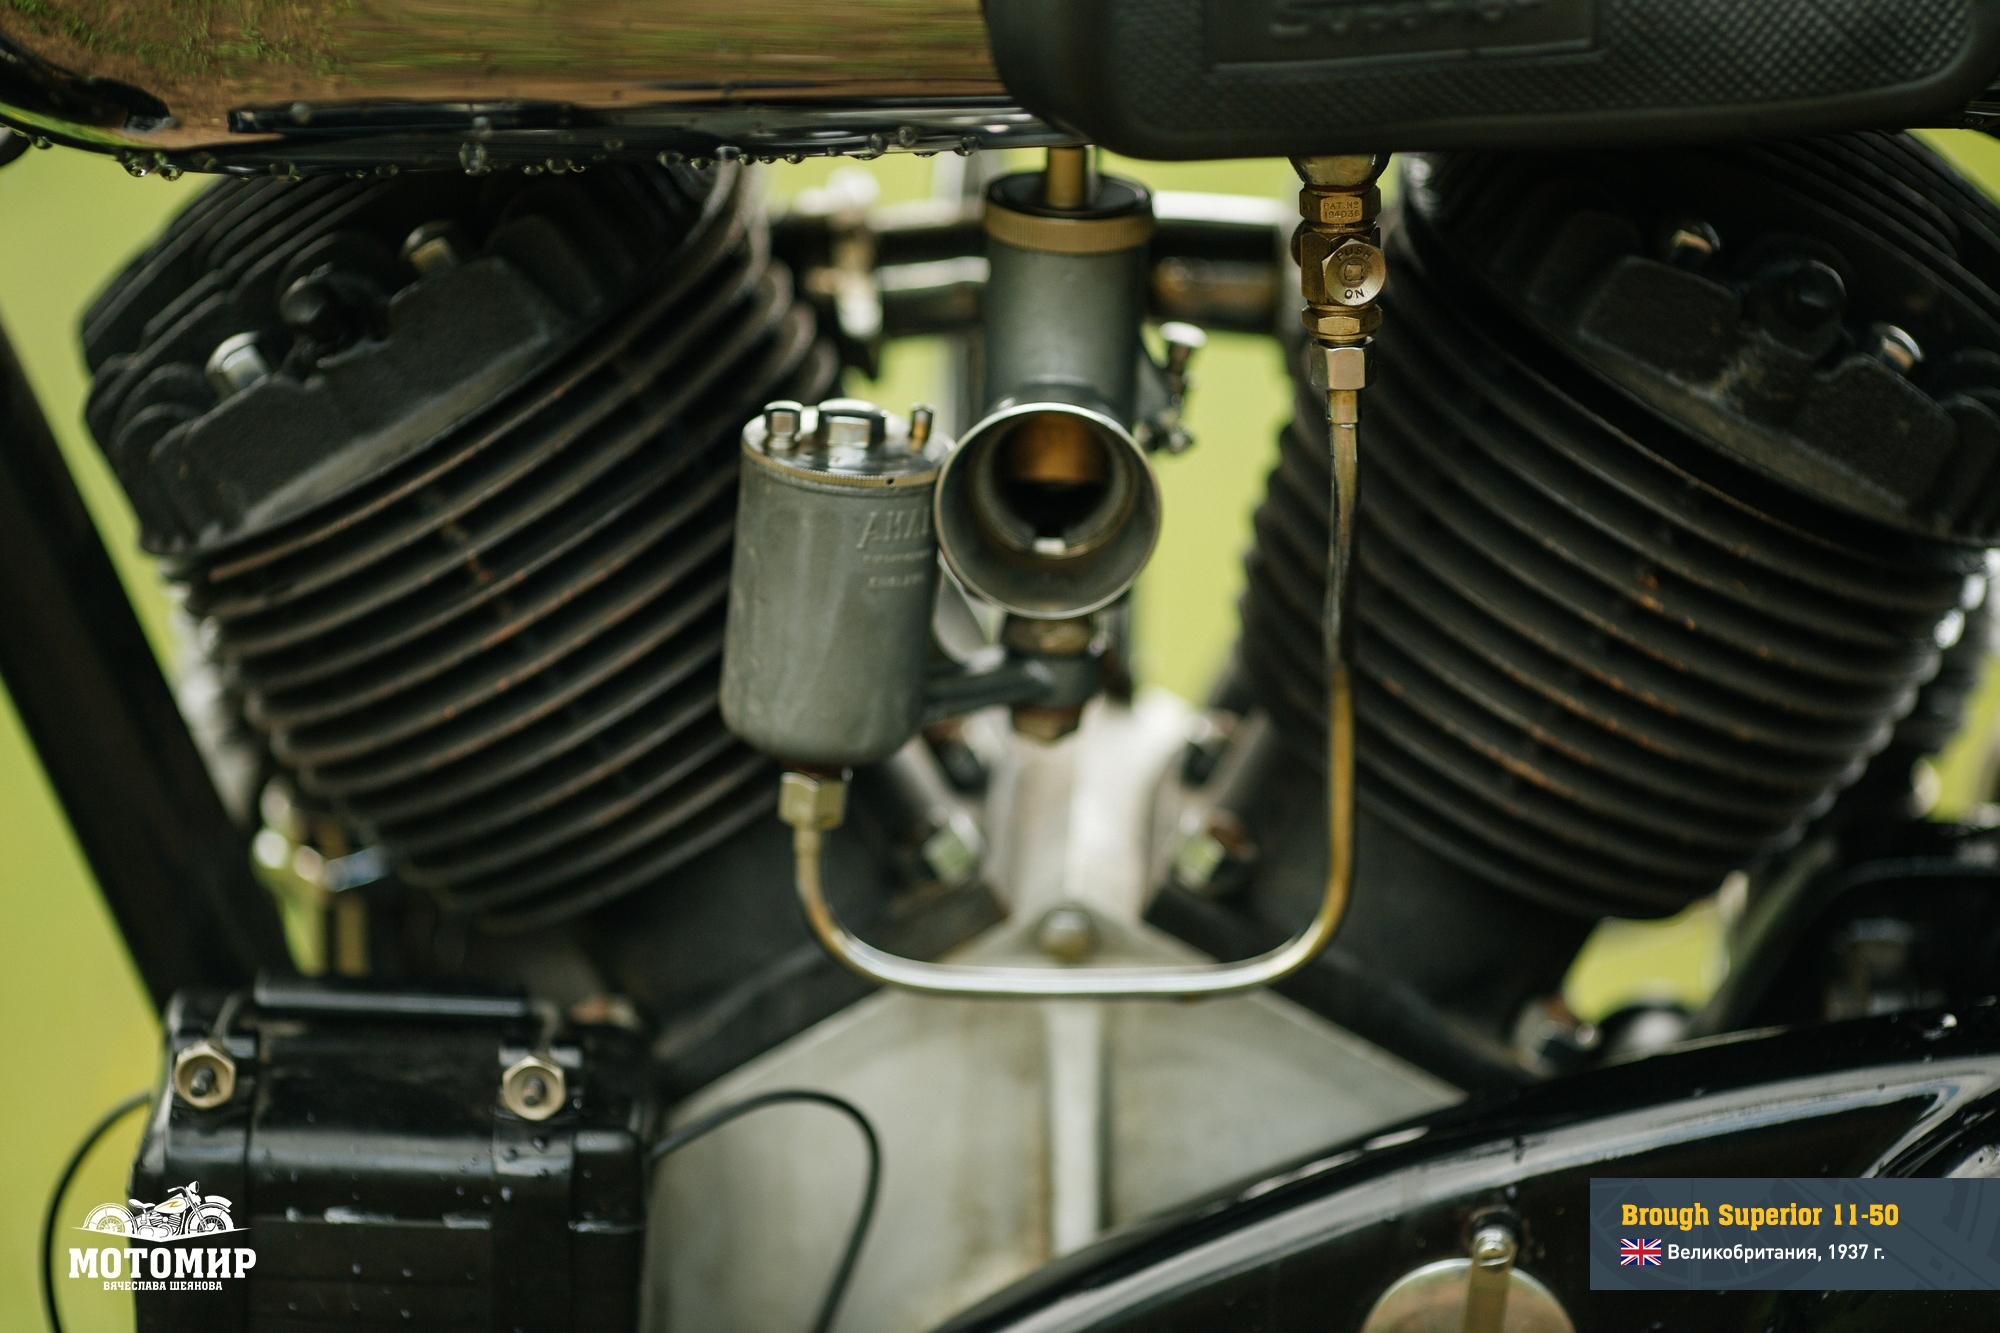 brough-superior-11-50-201509-web-23